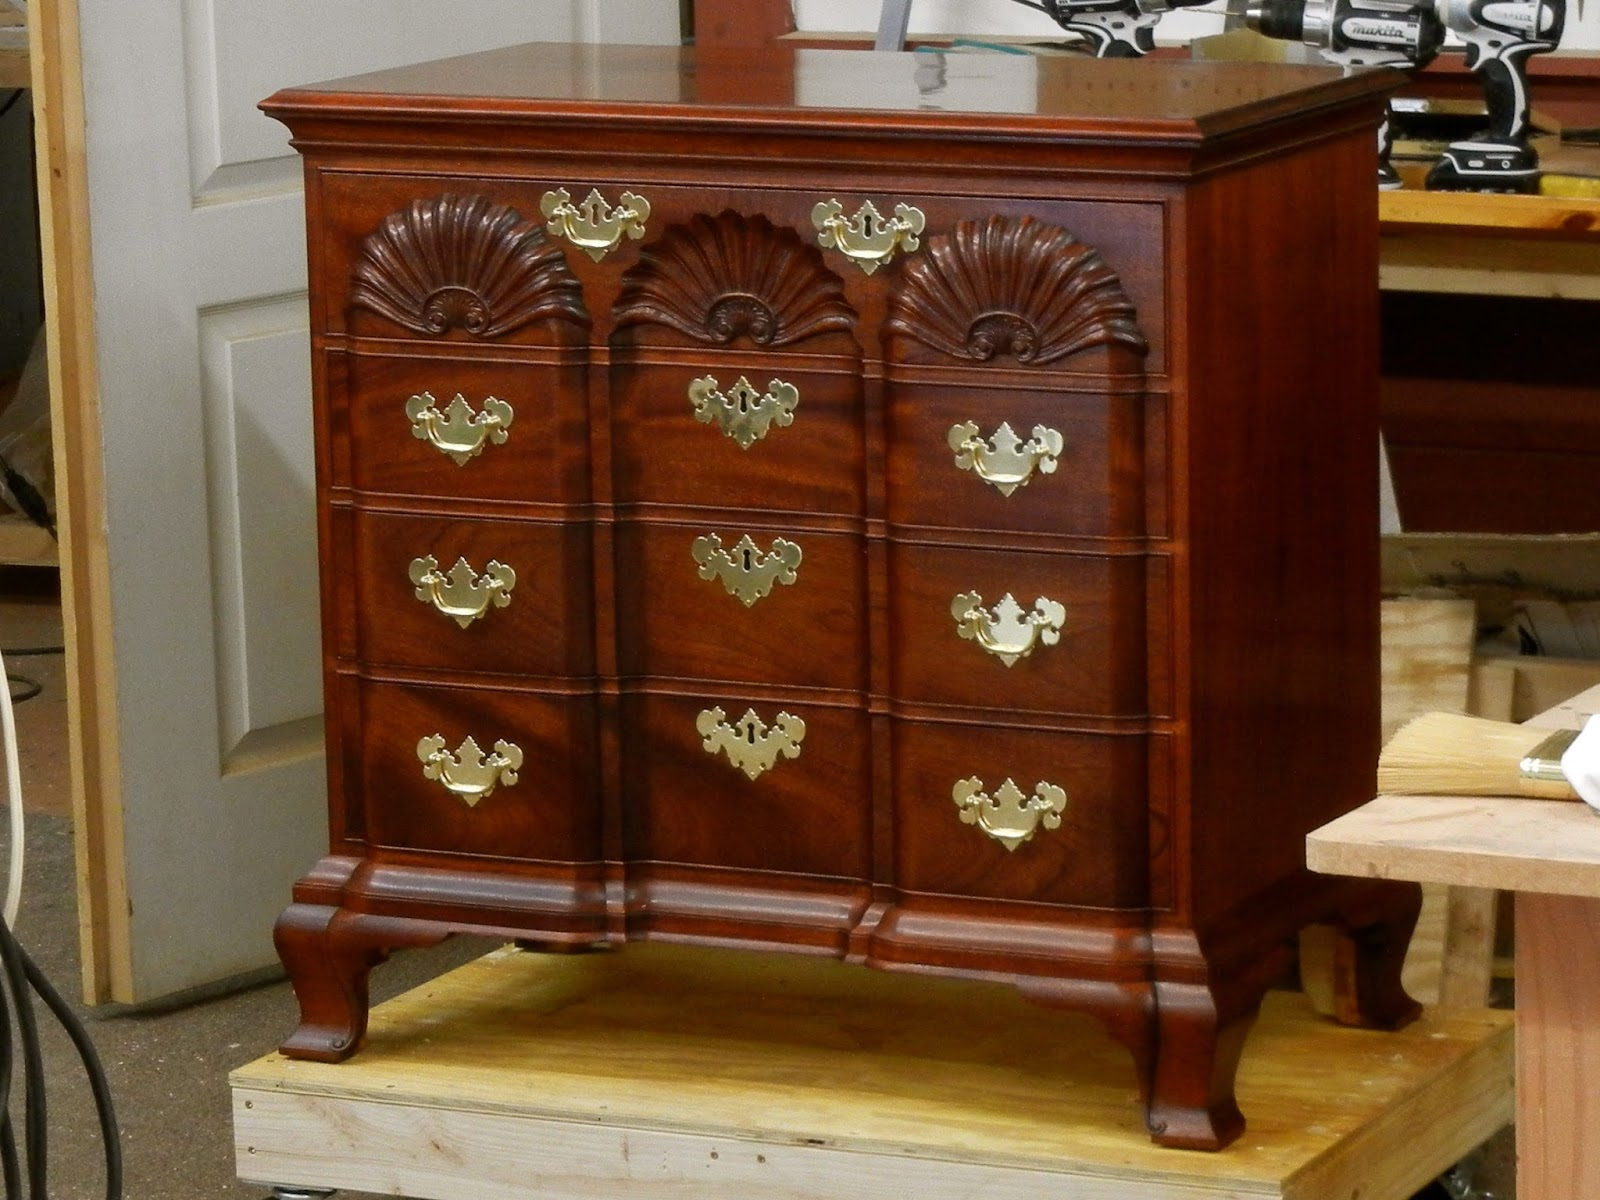 Newport Townsend Goddard Chest of Drawers